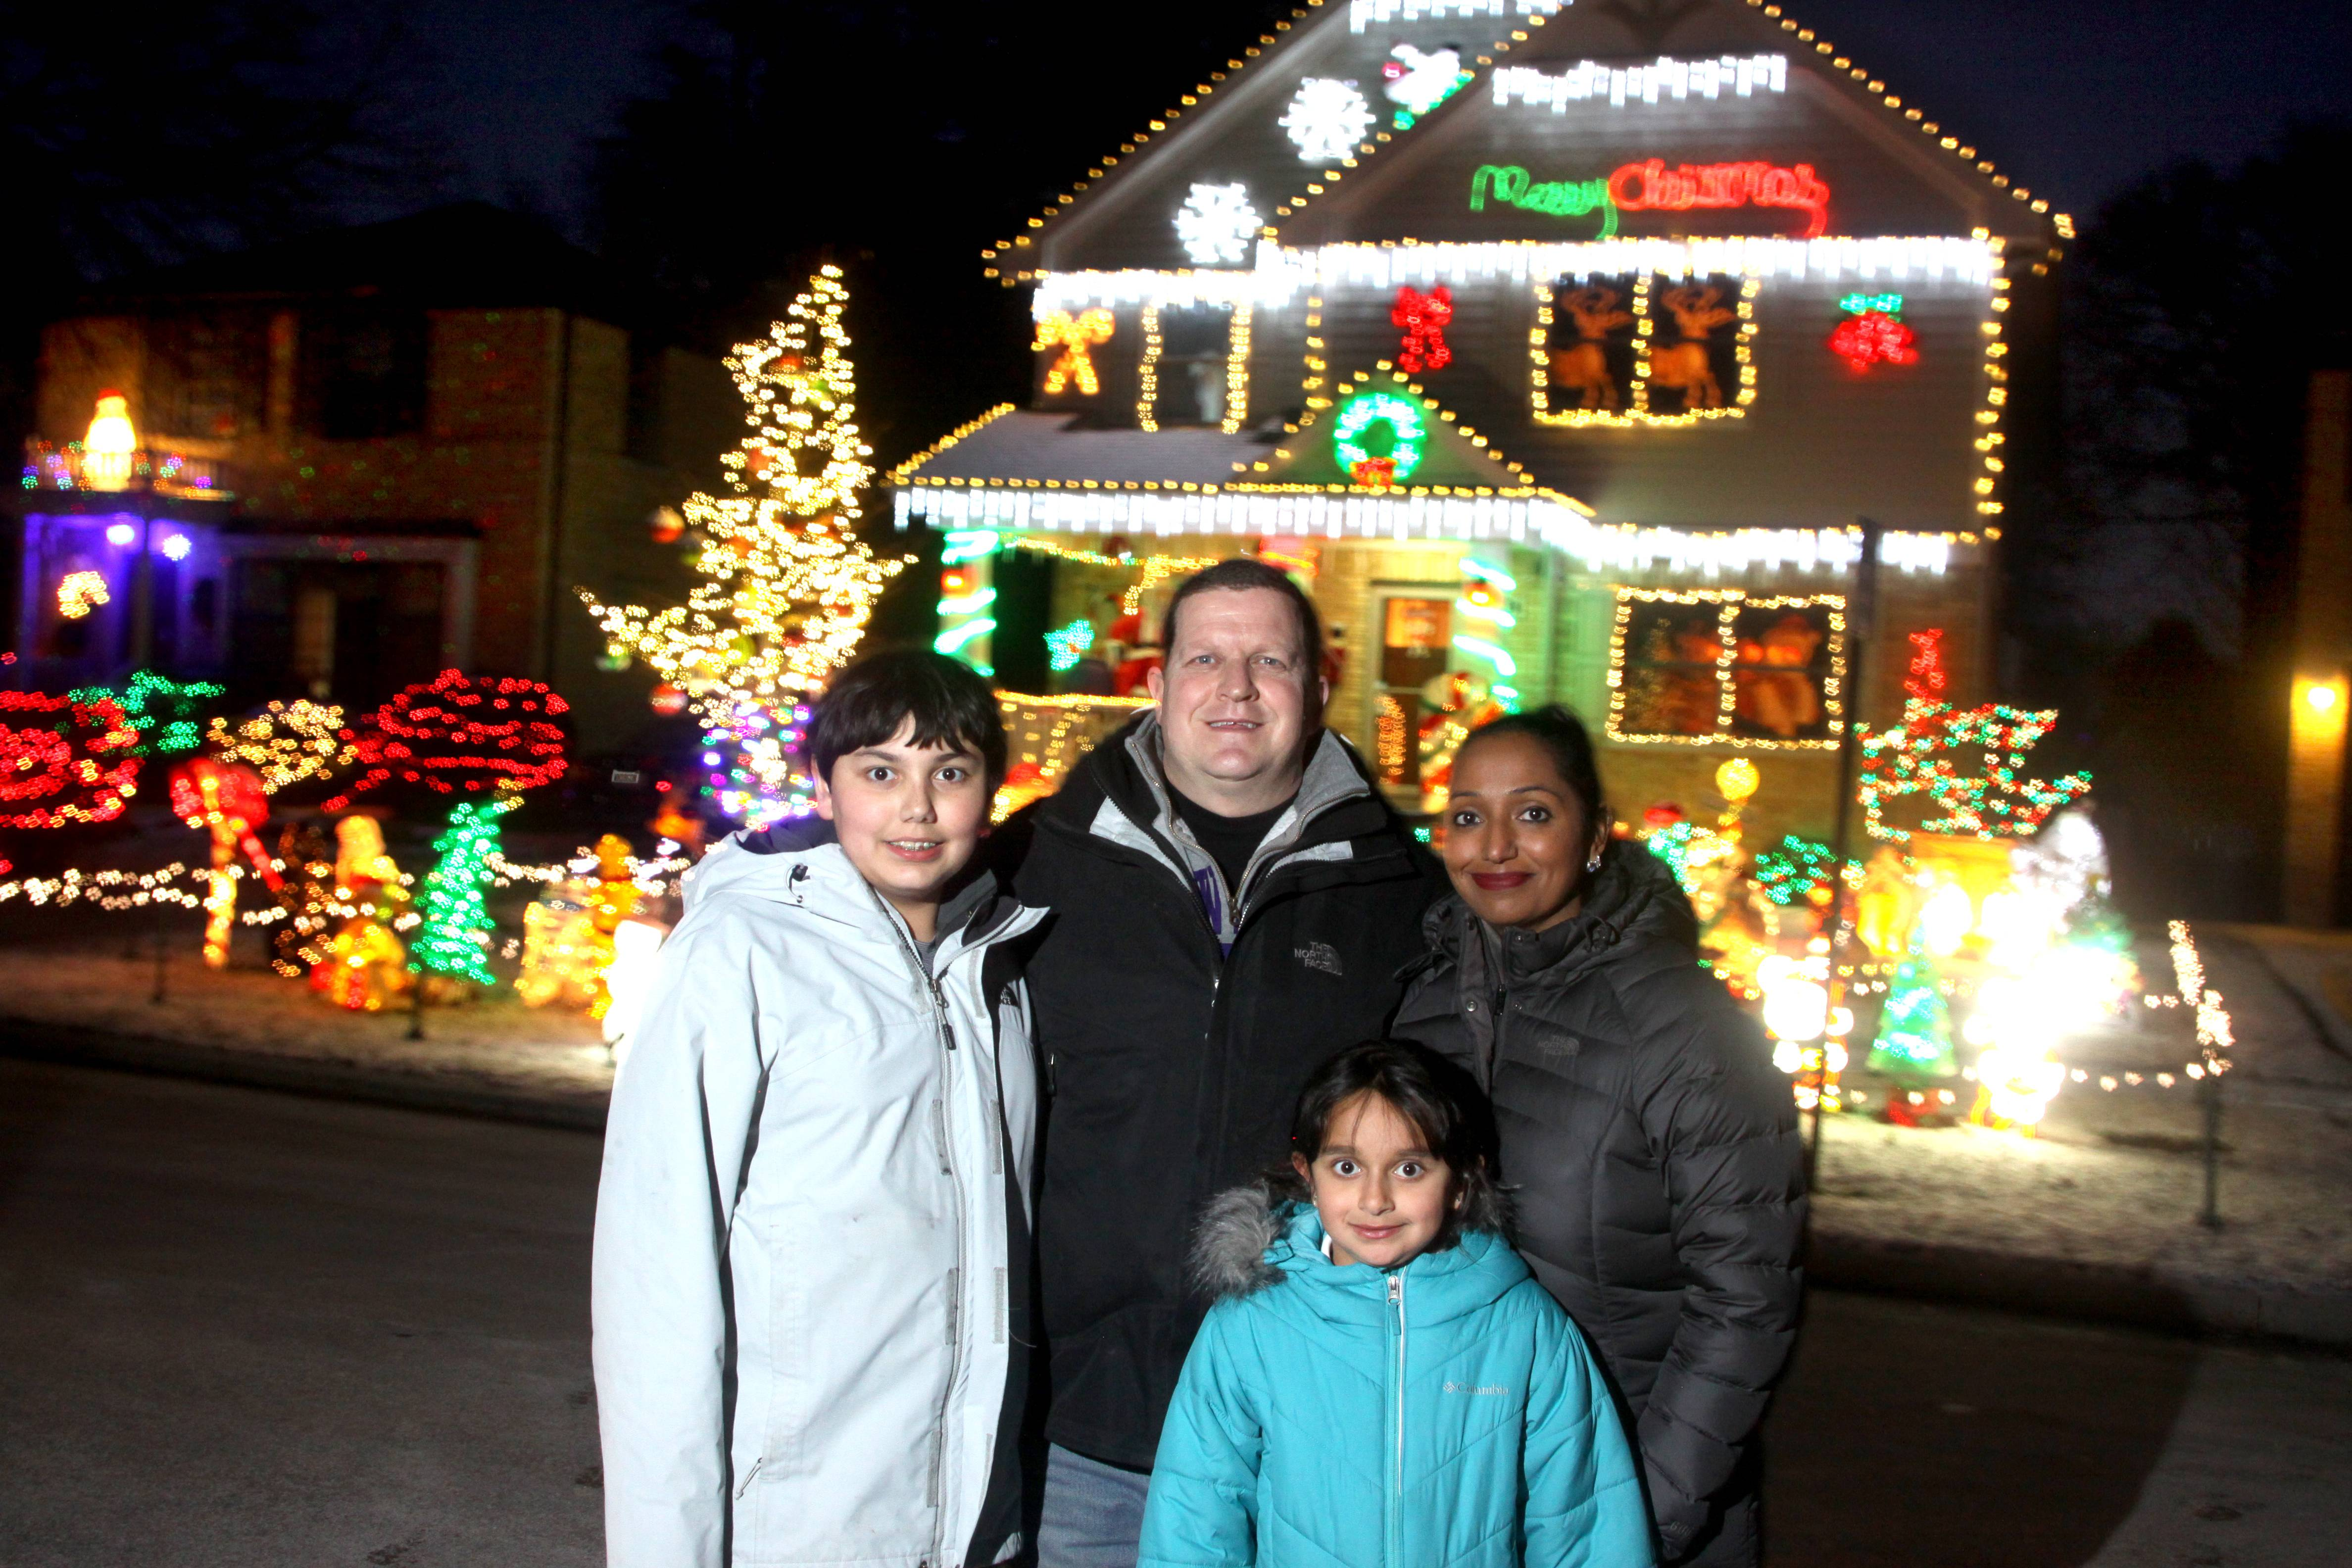 Matt FioRito, his wife, Rachna, and their children Maya and Gio won the Daily Herald's 2017 holiday lights contest for their display at 111 S. I Oka Ave. in Mount Prospect